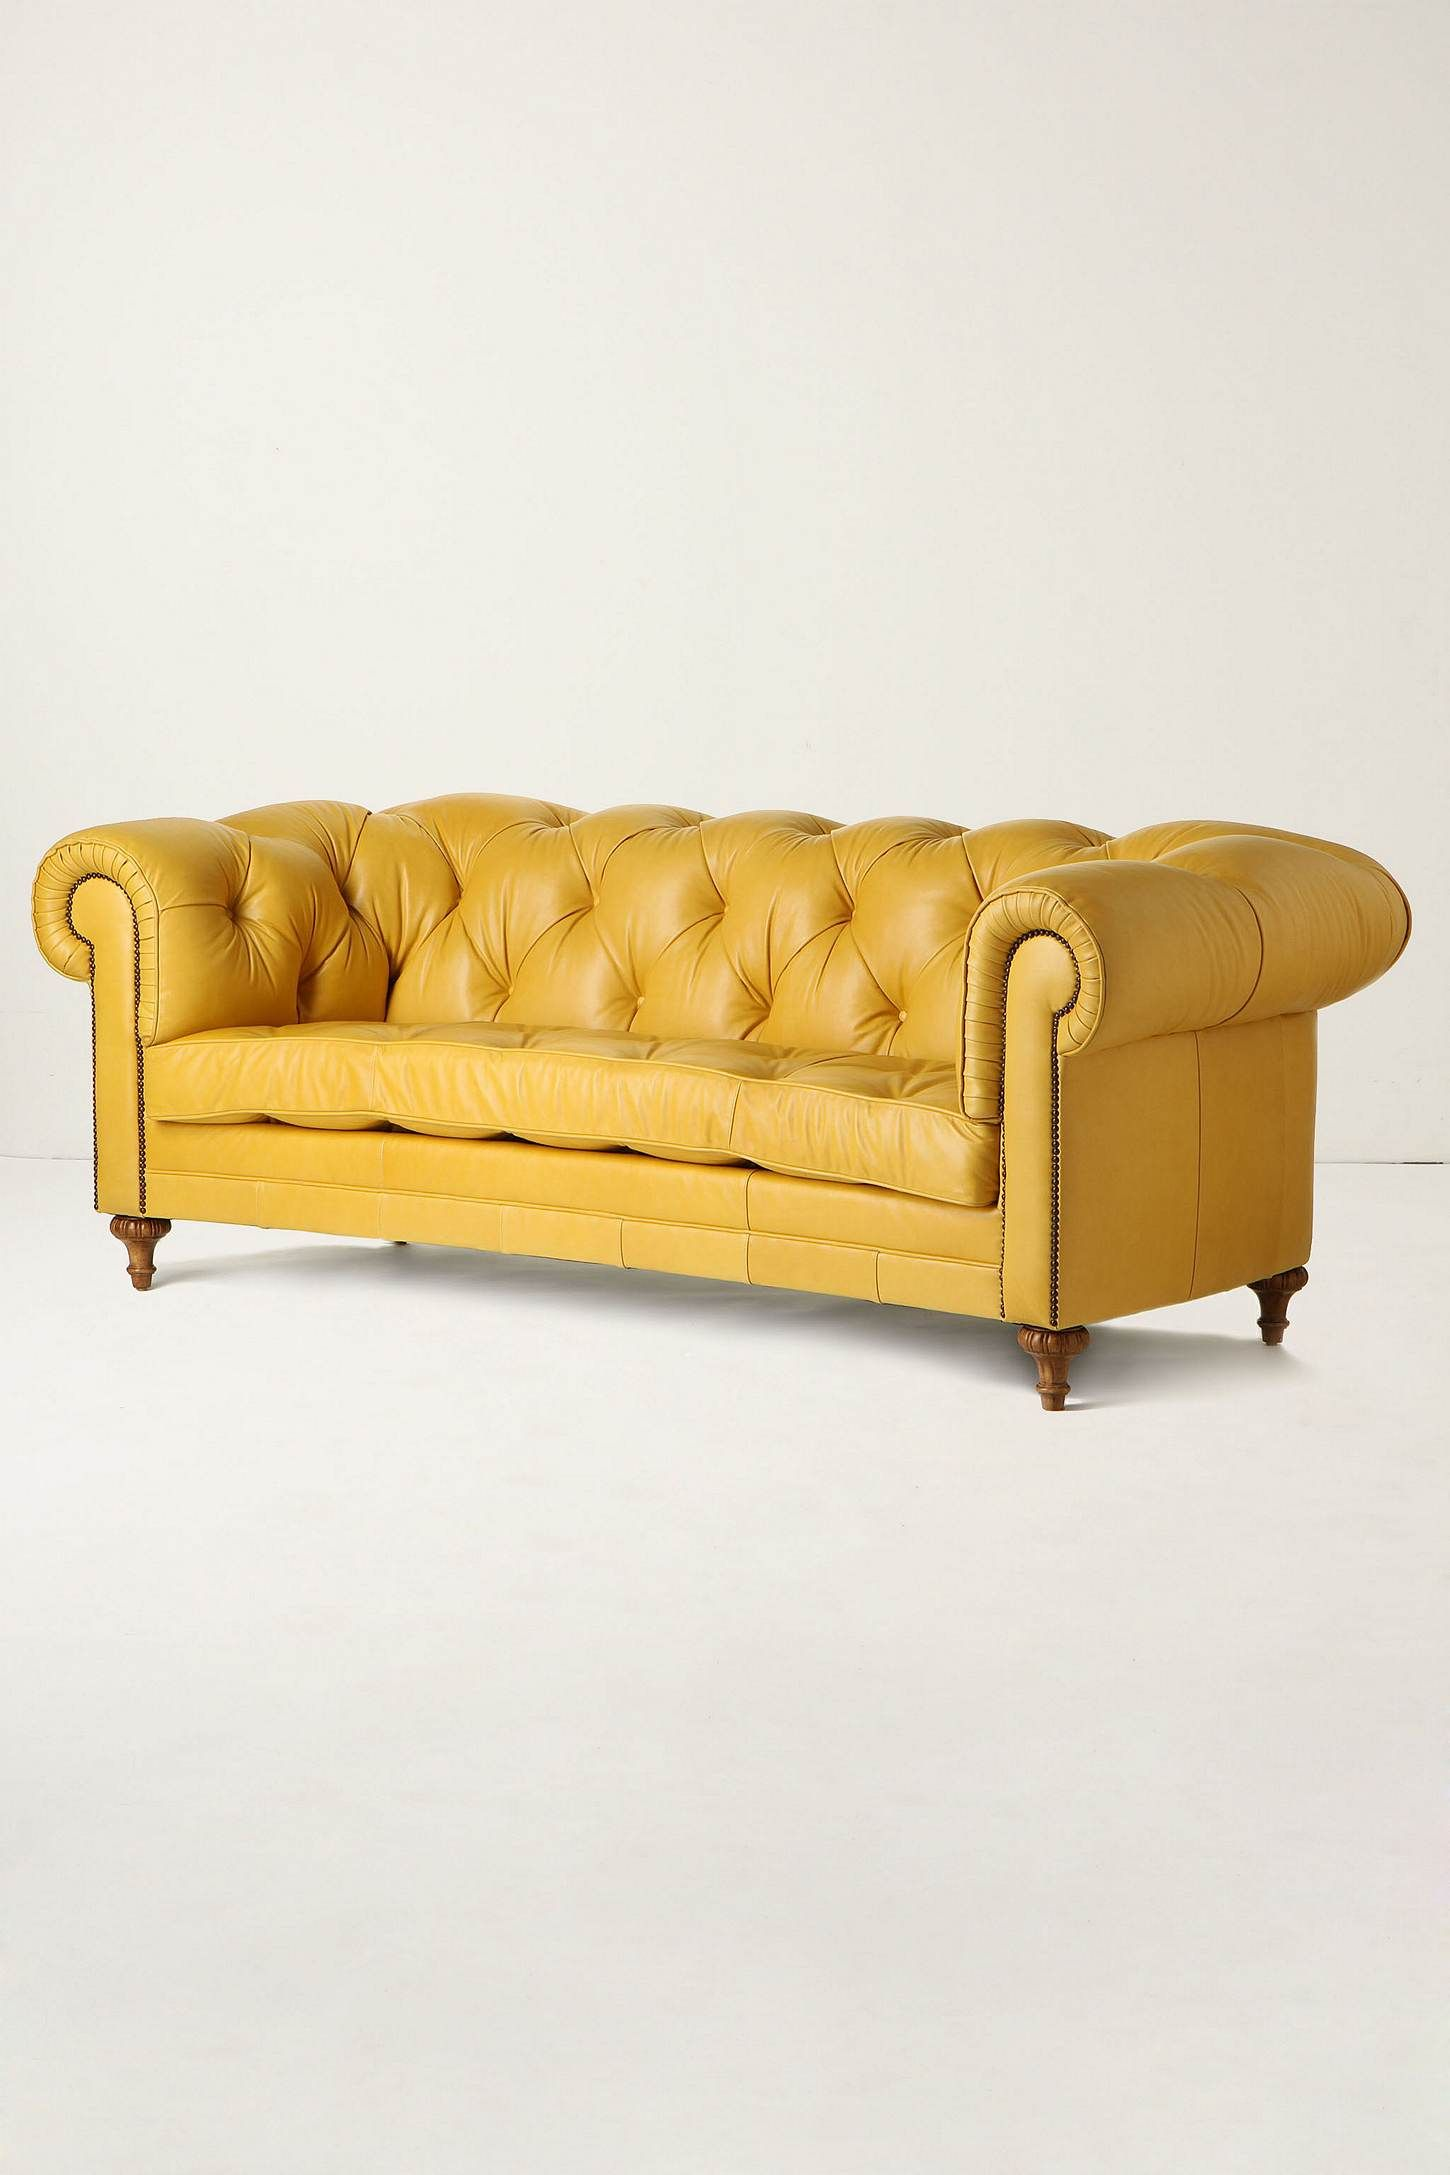 anthropologie sofa slipcovers for sofas with dual recliners mustard yellow will never get old me furniture